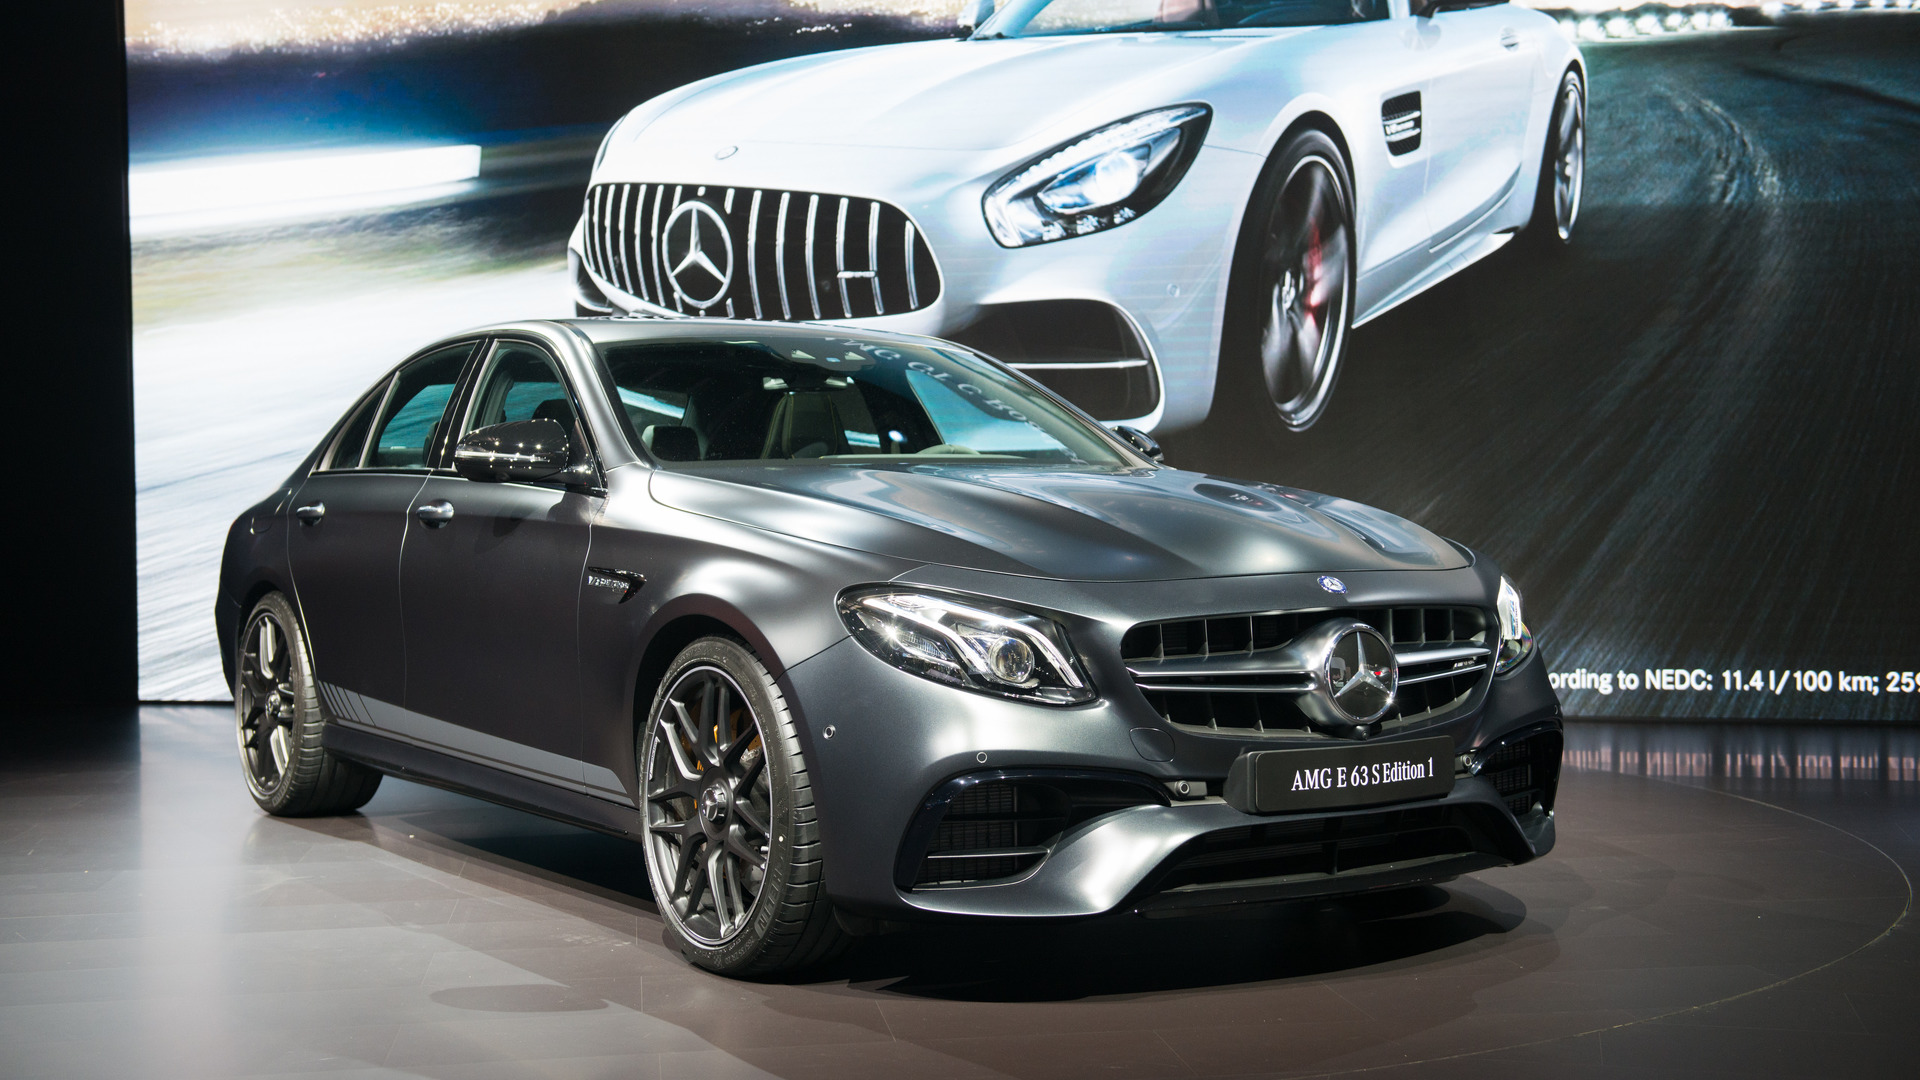 2016 Mercedes Benz Amg E 63 Sedan >> Mercedes Amg E63 S Ad Campaign Targets Managers And